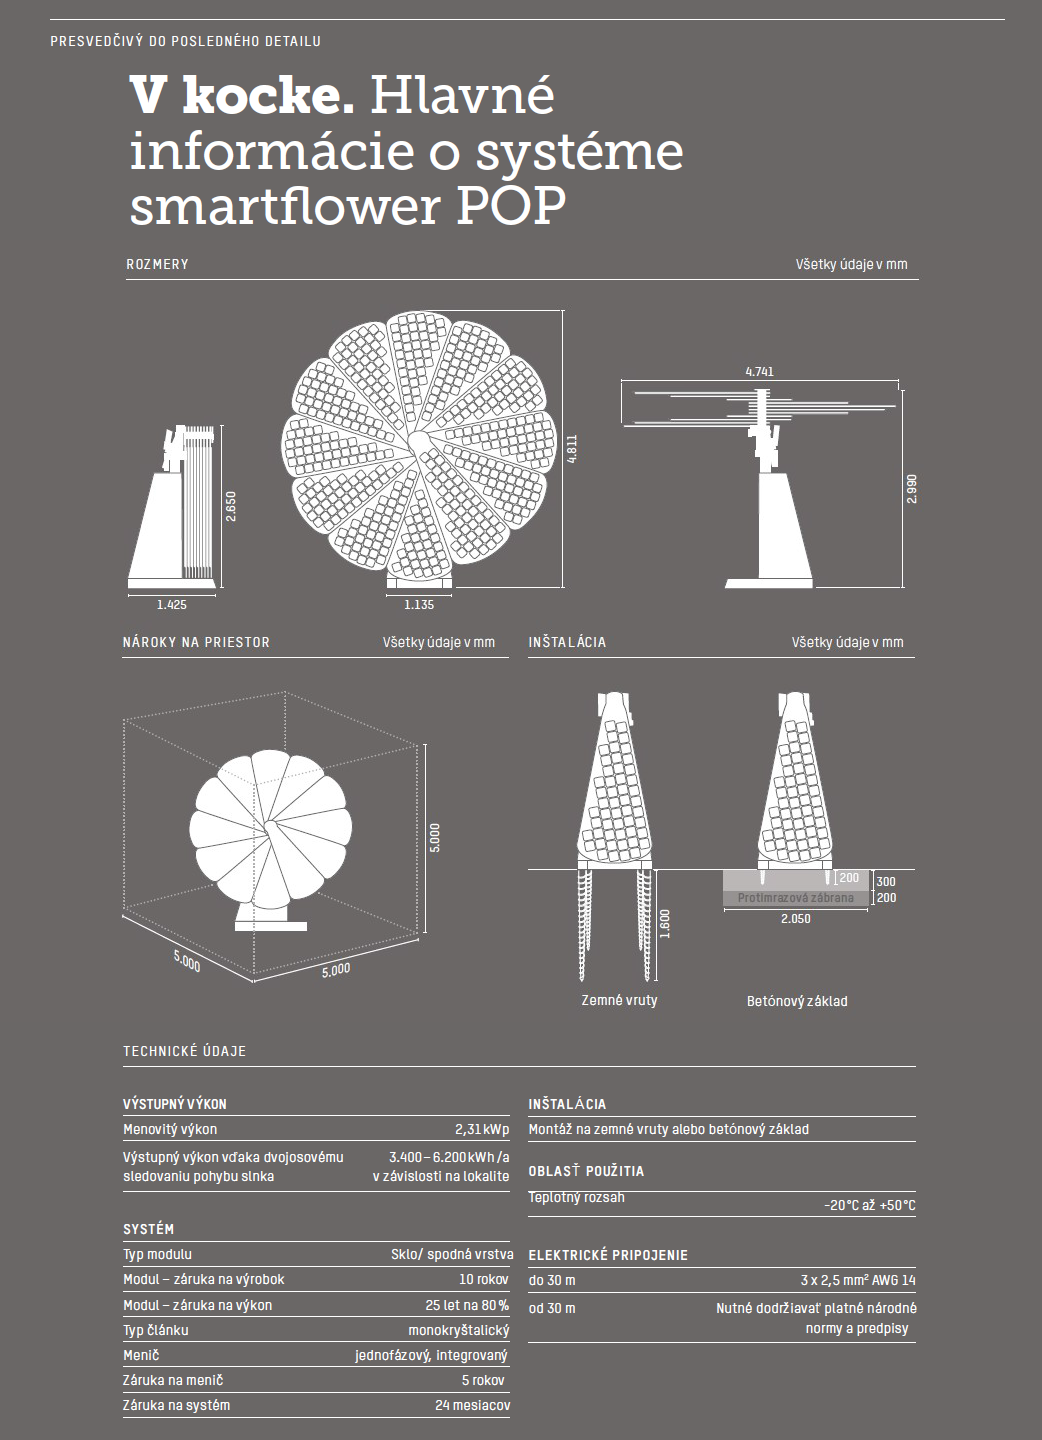 smartflower POP 16